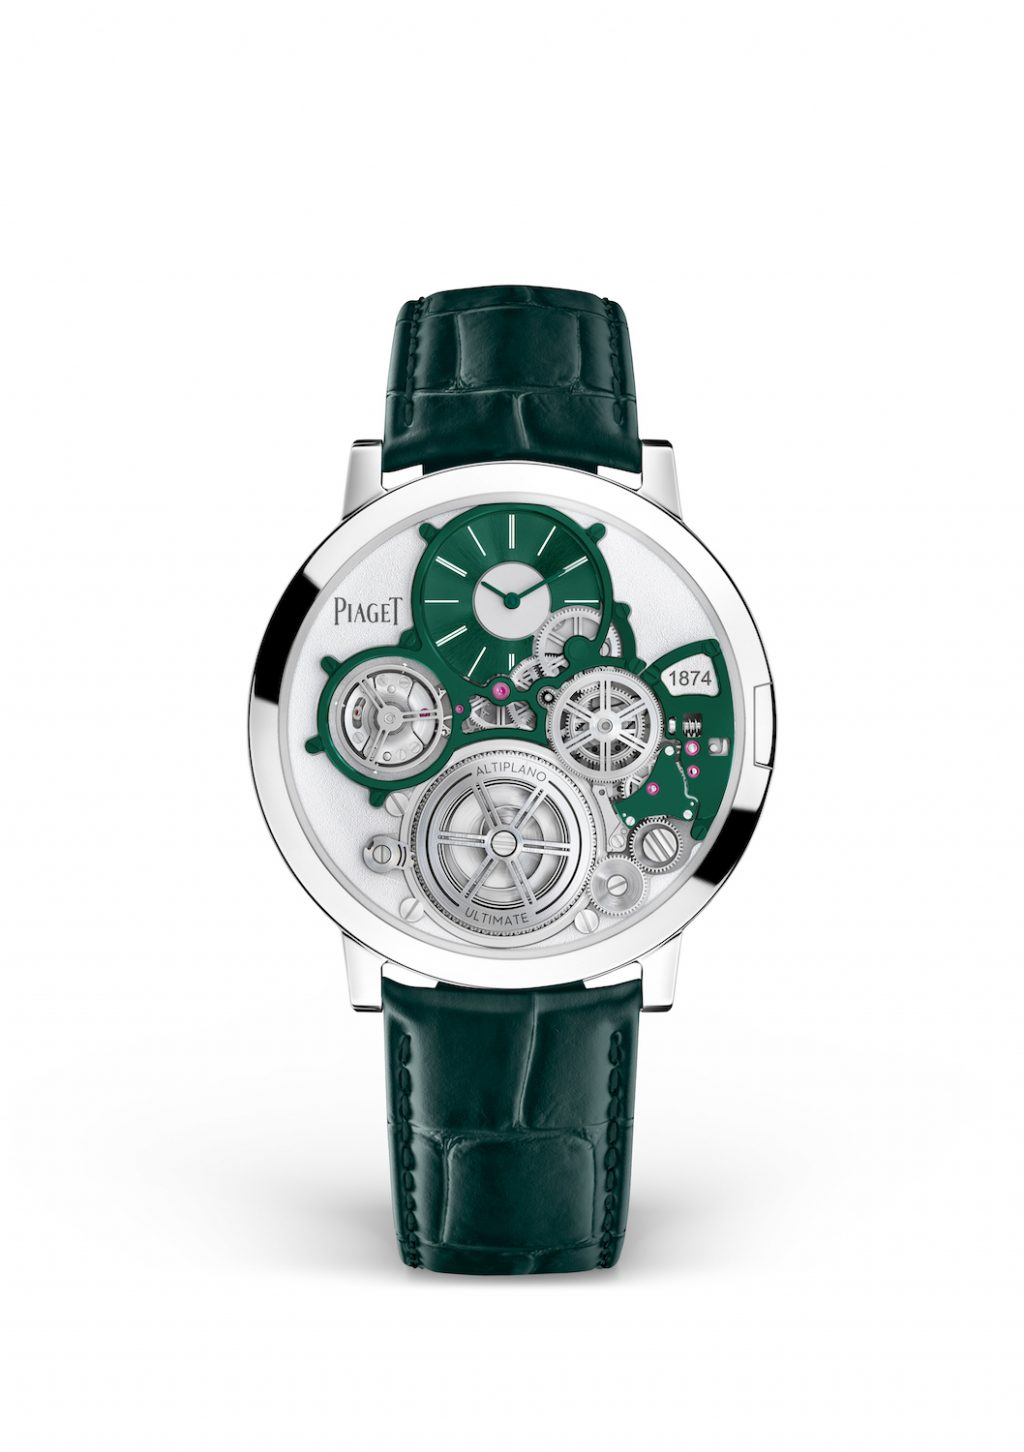 Piaget 'Altipano Ultimate Concept' watch